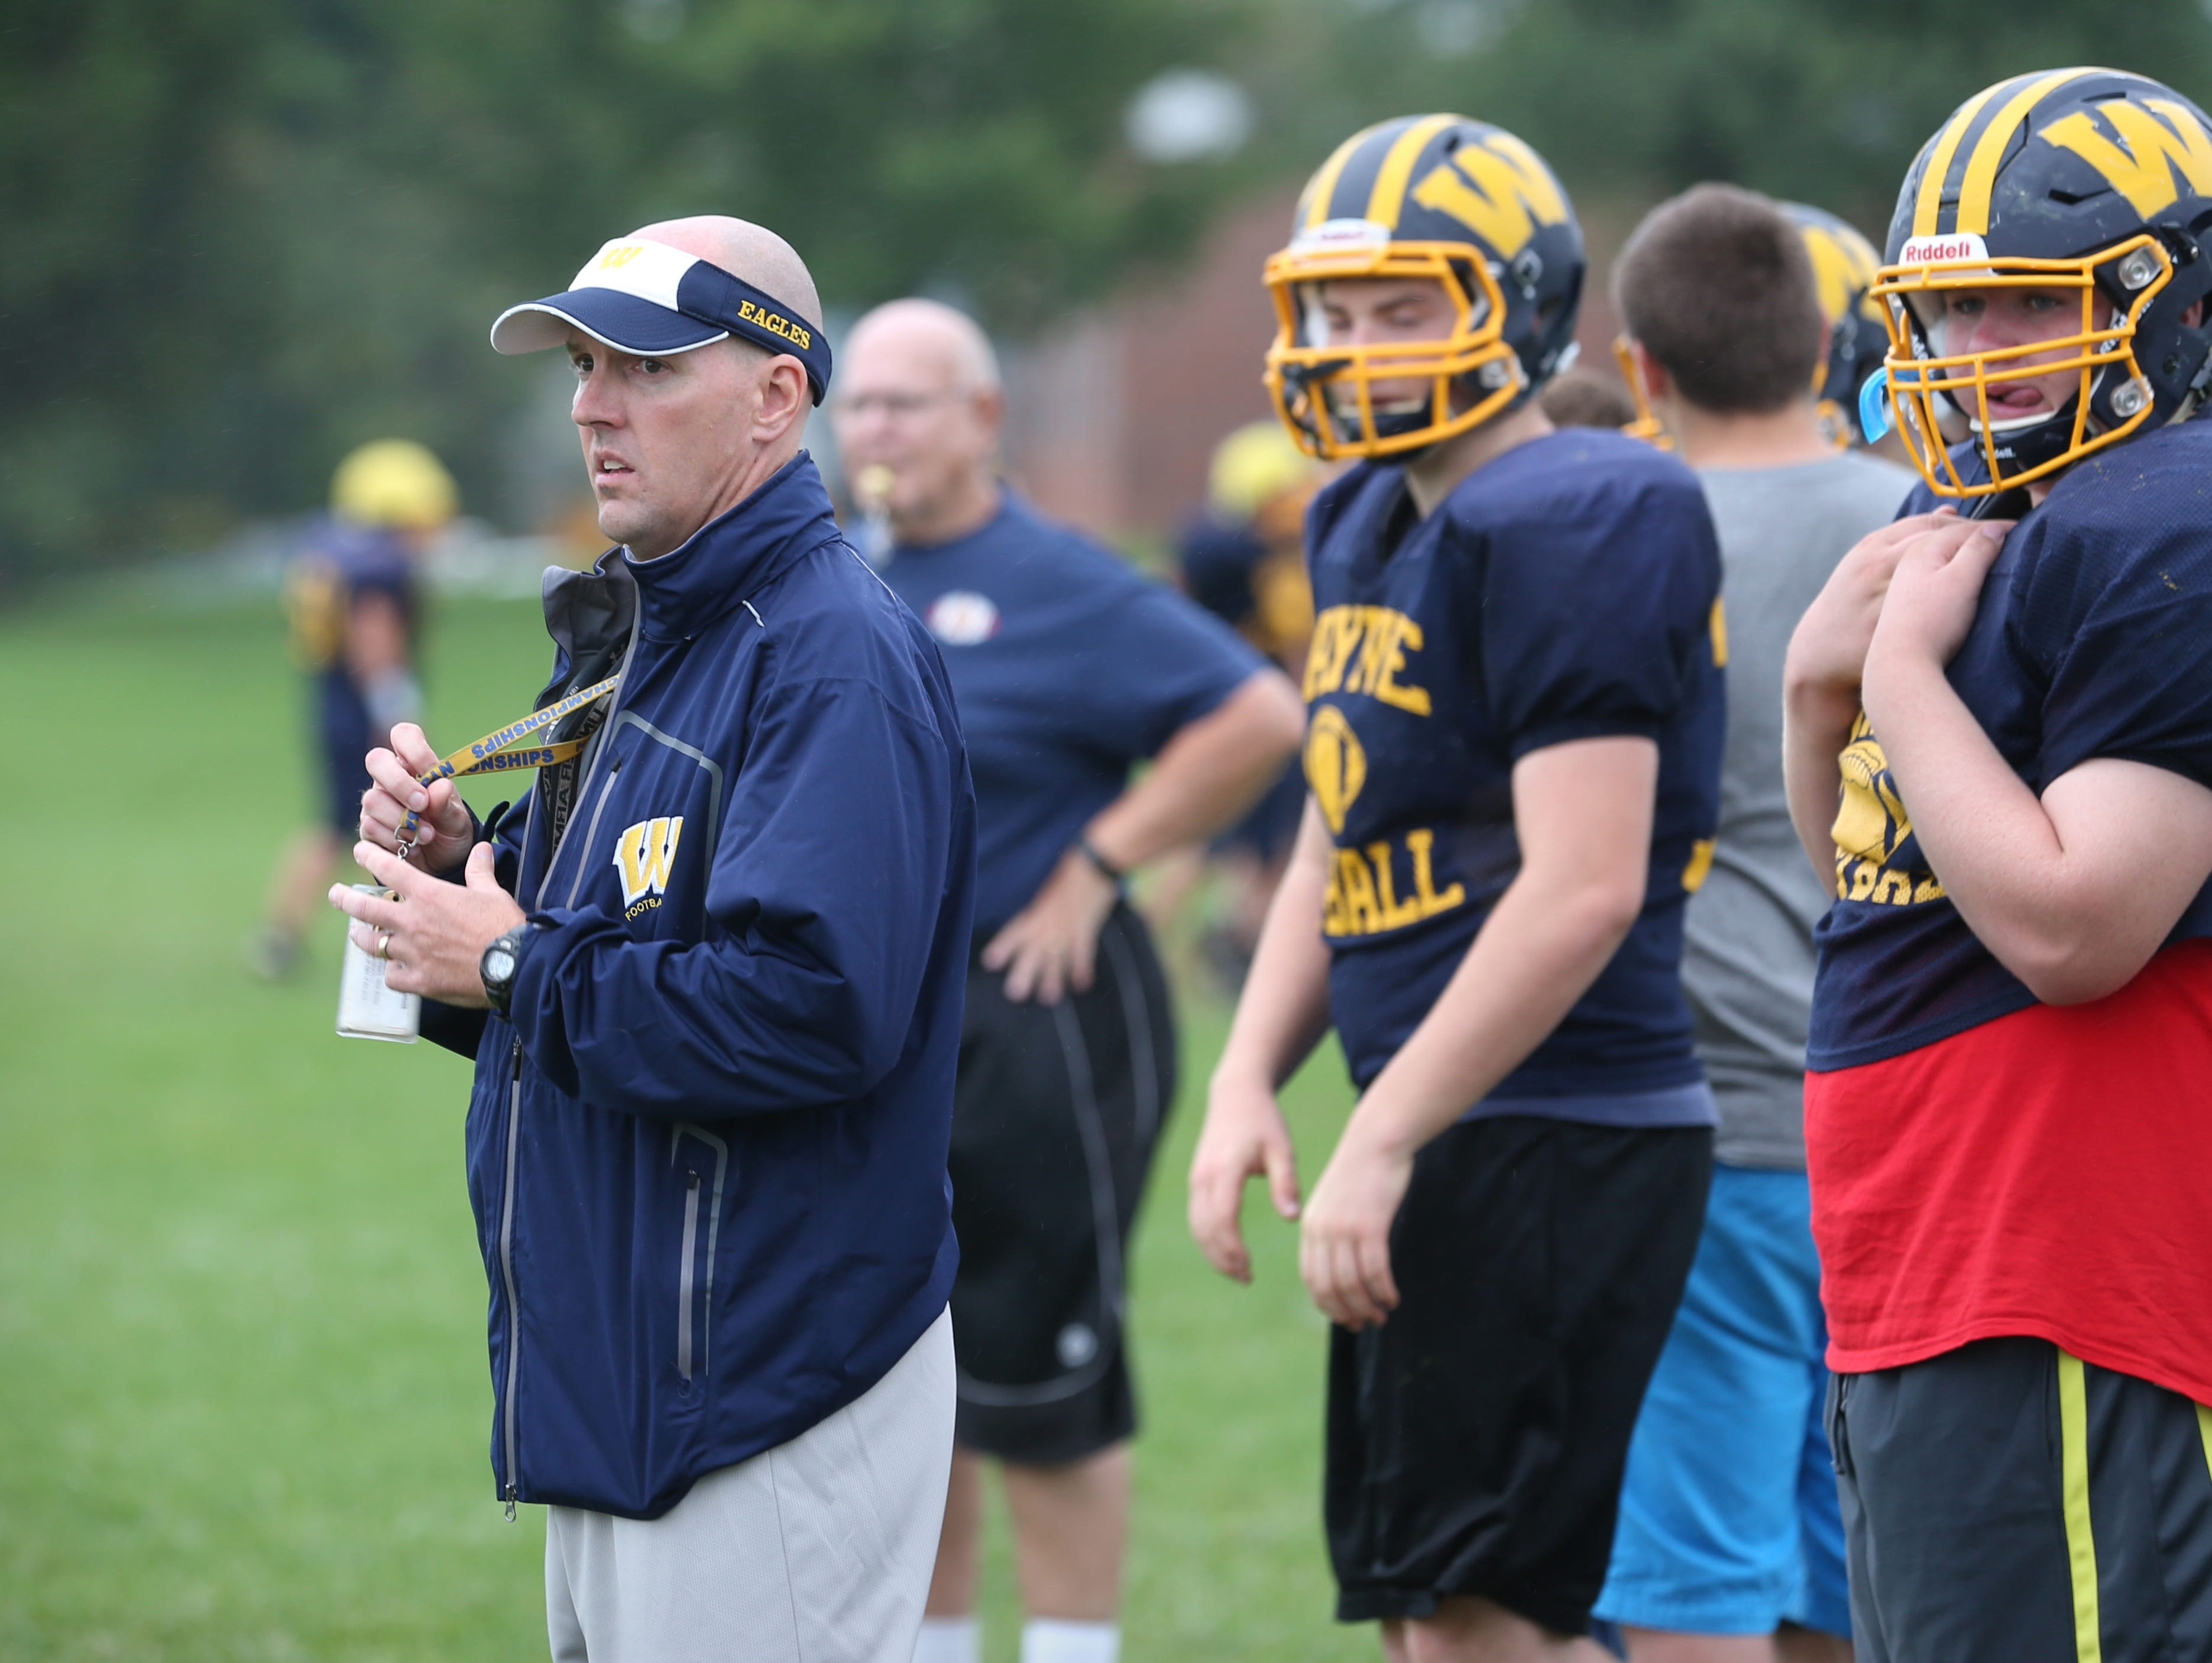 Wayne varsity football head coach David Marean watches as his offensive unit runs through plays during the team's practice at Wayne Central School in Ontario Monday, Sept. 28, 2015.